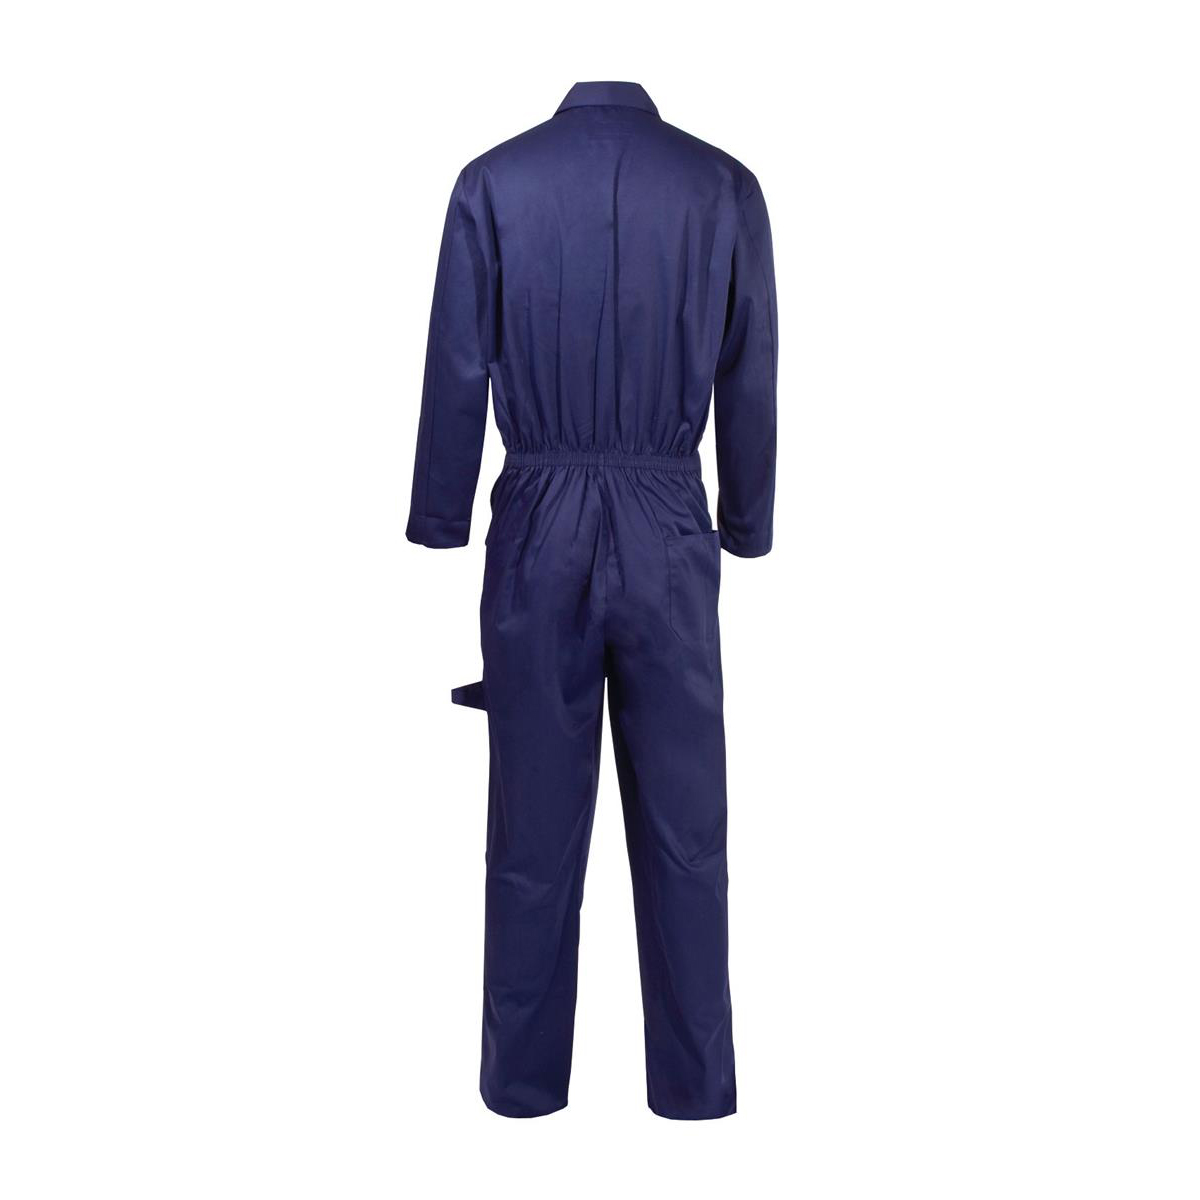 Coverall Basic with Popper Front Opening Polycotton Large Navy Ref RPCBSN44 *Approx 3 Day Leadtime*